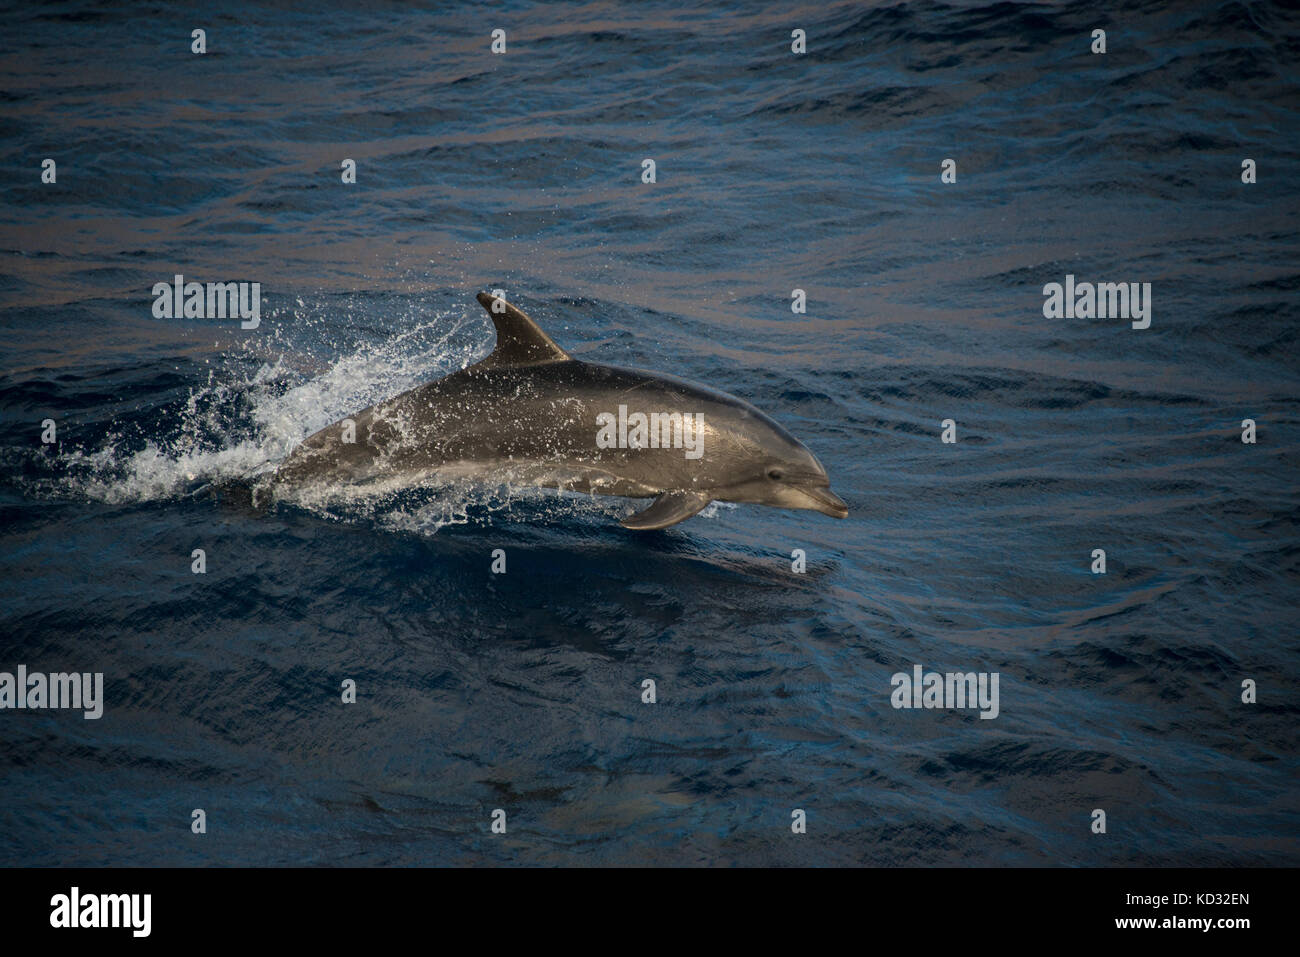 Bottlenose dolphins doing acrobatic jumps, Guadalupe, Mexico - Stock Image